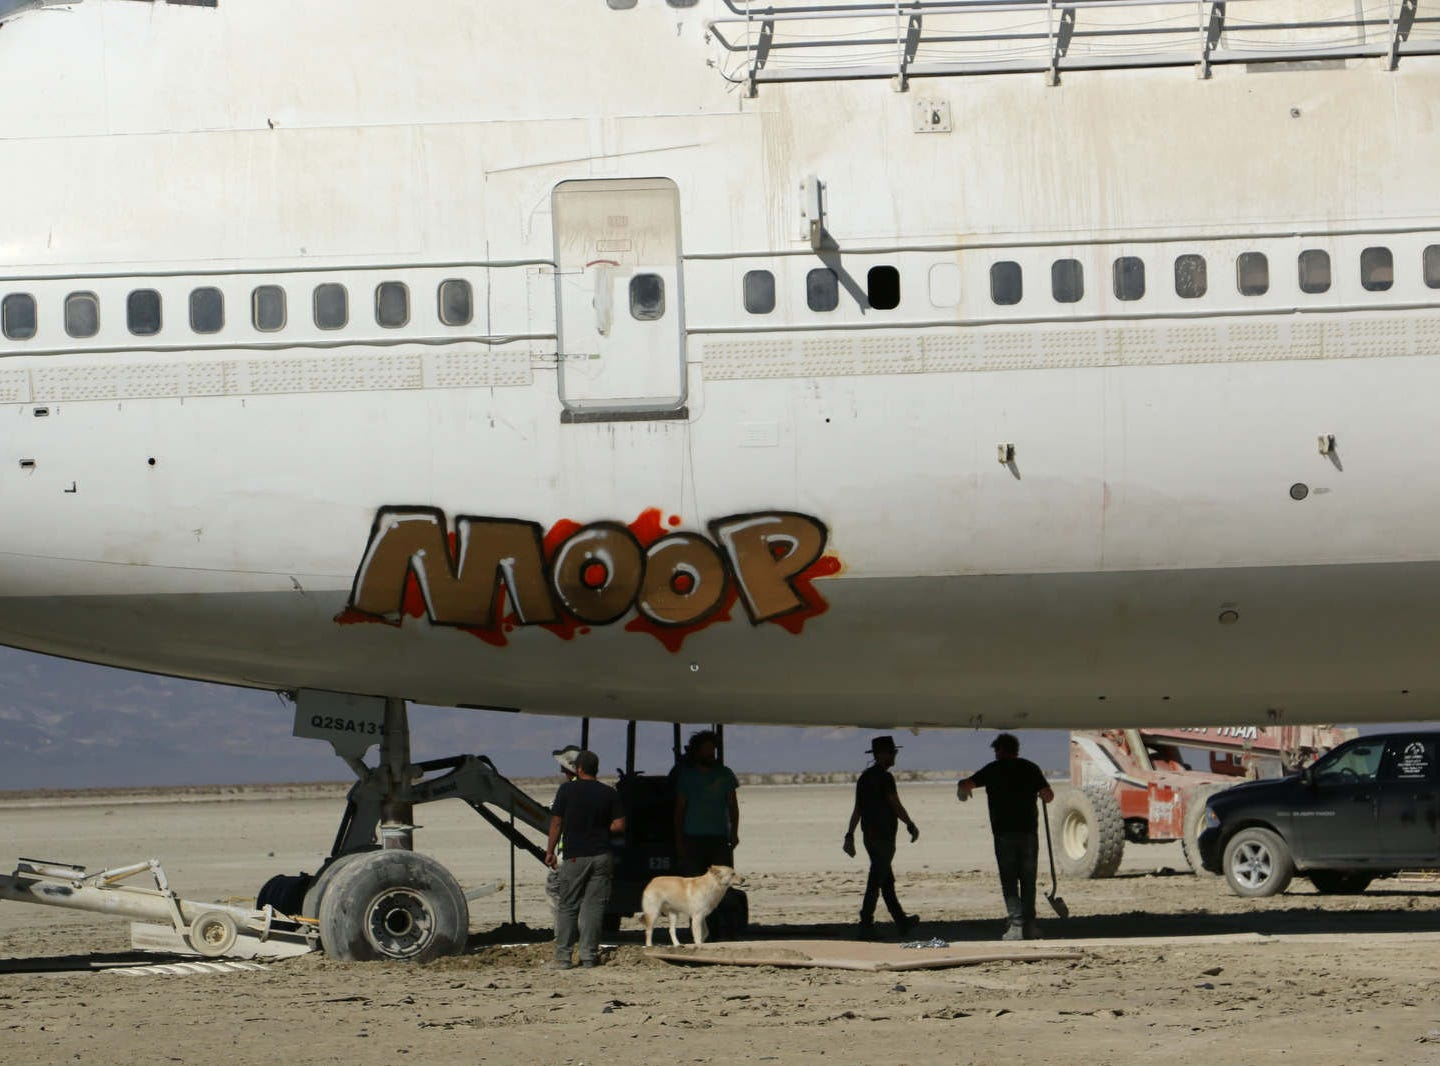 A crew of volunteers work to move a Burning Man art airplane off of the Black Rock Desert playa on Sept. 21, 2018.